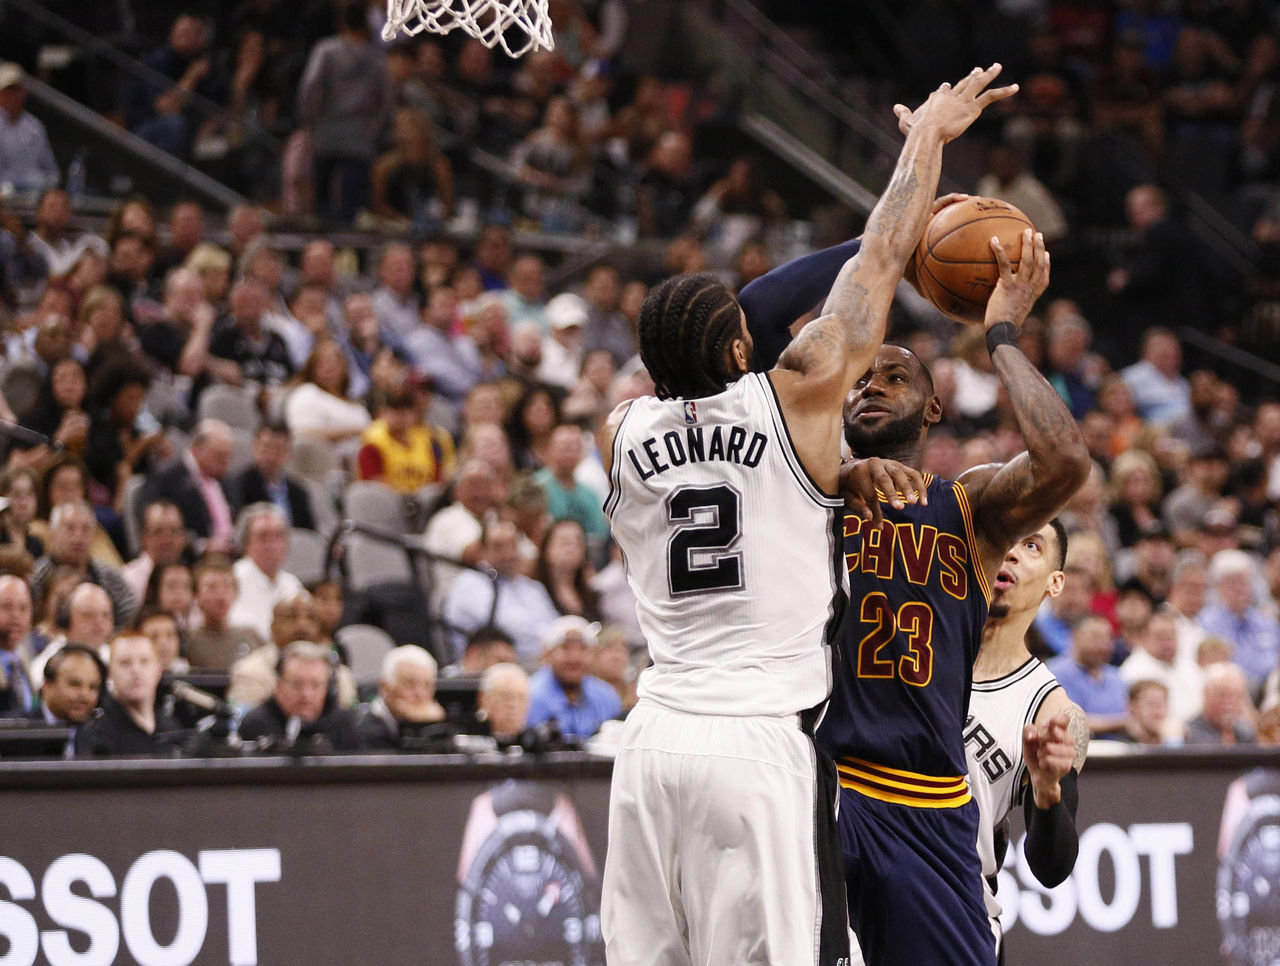 Cropped 2017 03 28t015938z 222088981 nocid rtrmadp 3 nba cleveland cavaliers at san antonio spurs